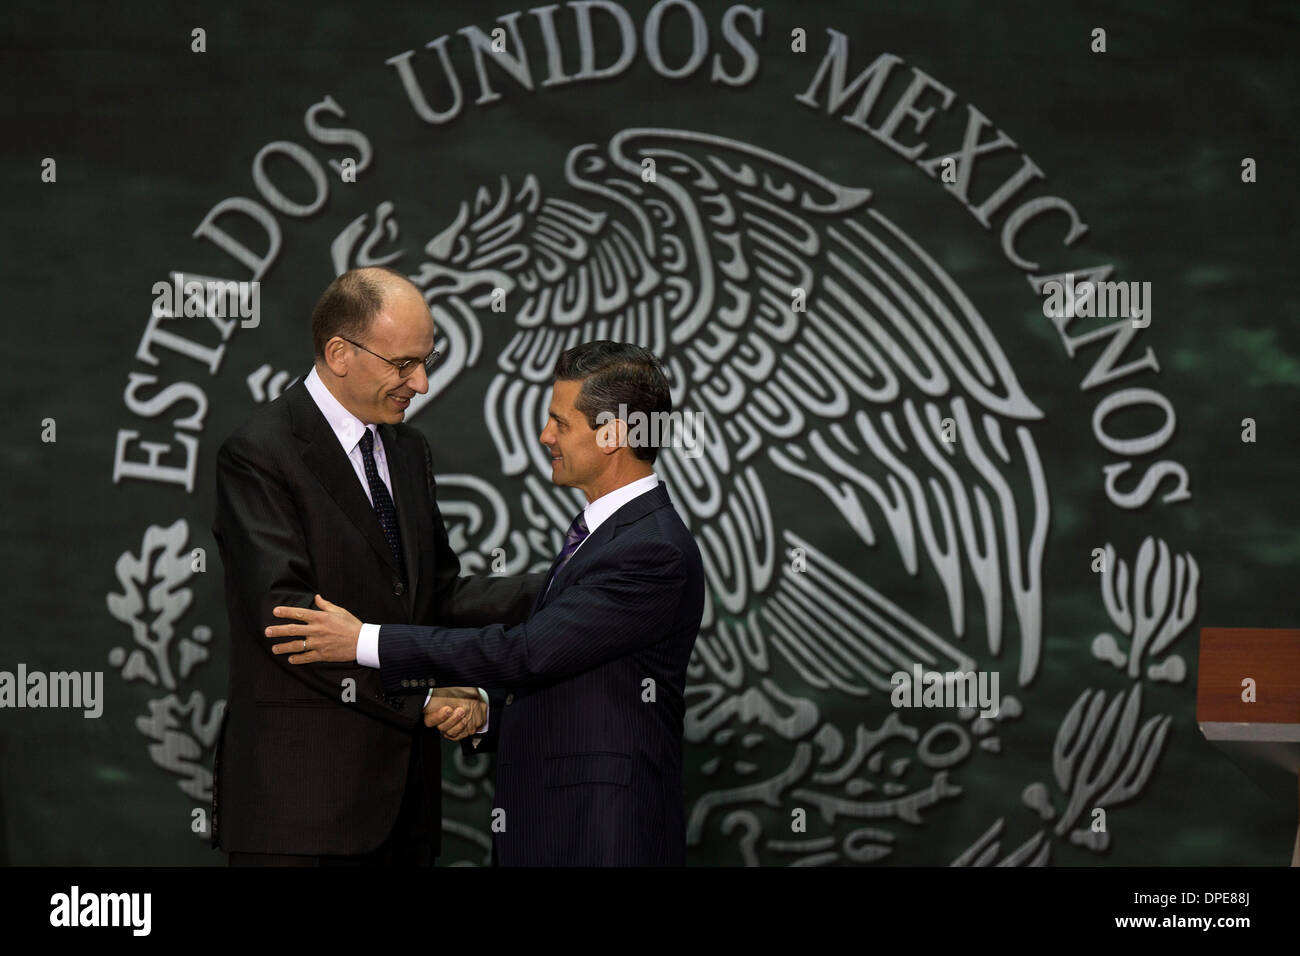 Mexico City, Mexico. 13th Jan, 2014. Mexican President Enrique Pena Nieto (R) shakes hands with Italian Prime Minister Stock Photo